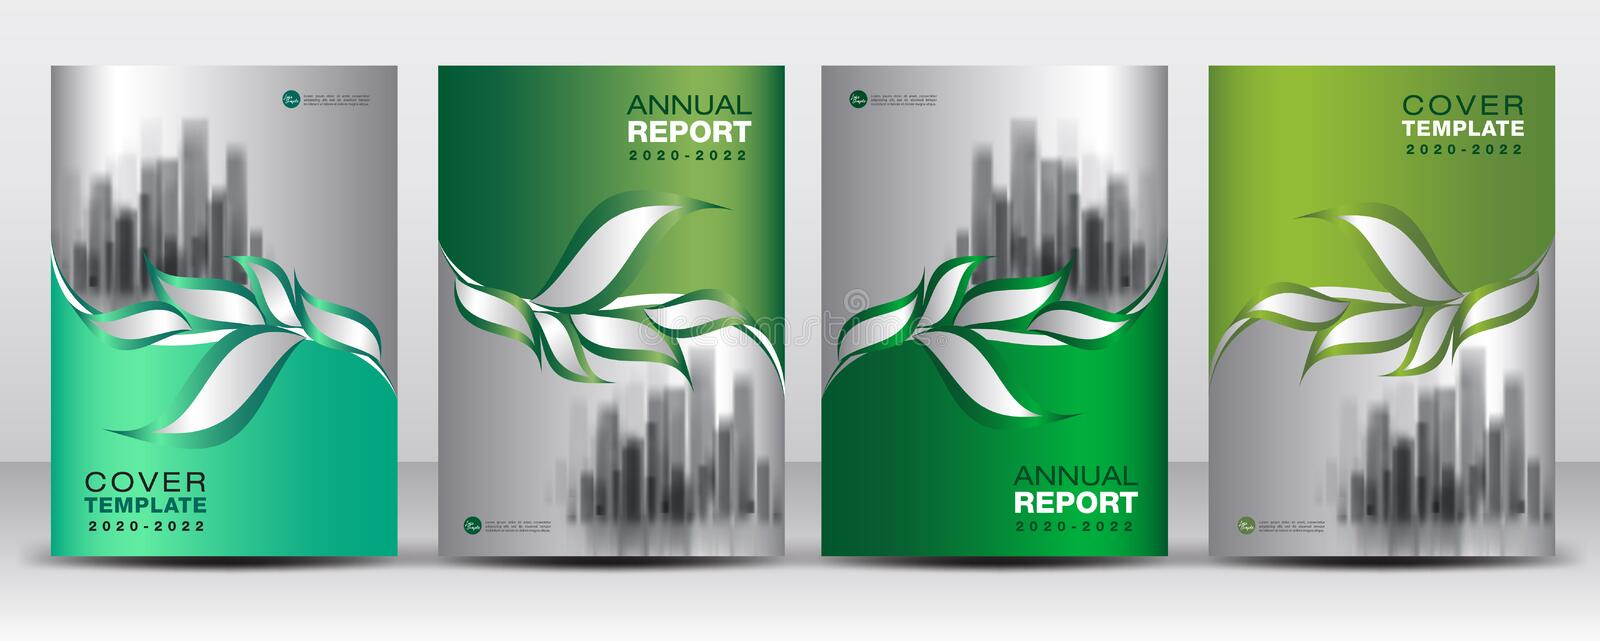 Green Cover design template vector, Nature organic leaves creative idea, Can be use to Business Brochure flyer, Annual Report royalty free illustration